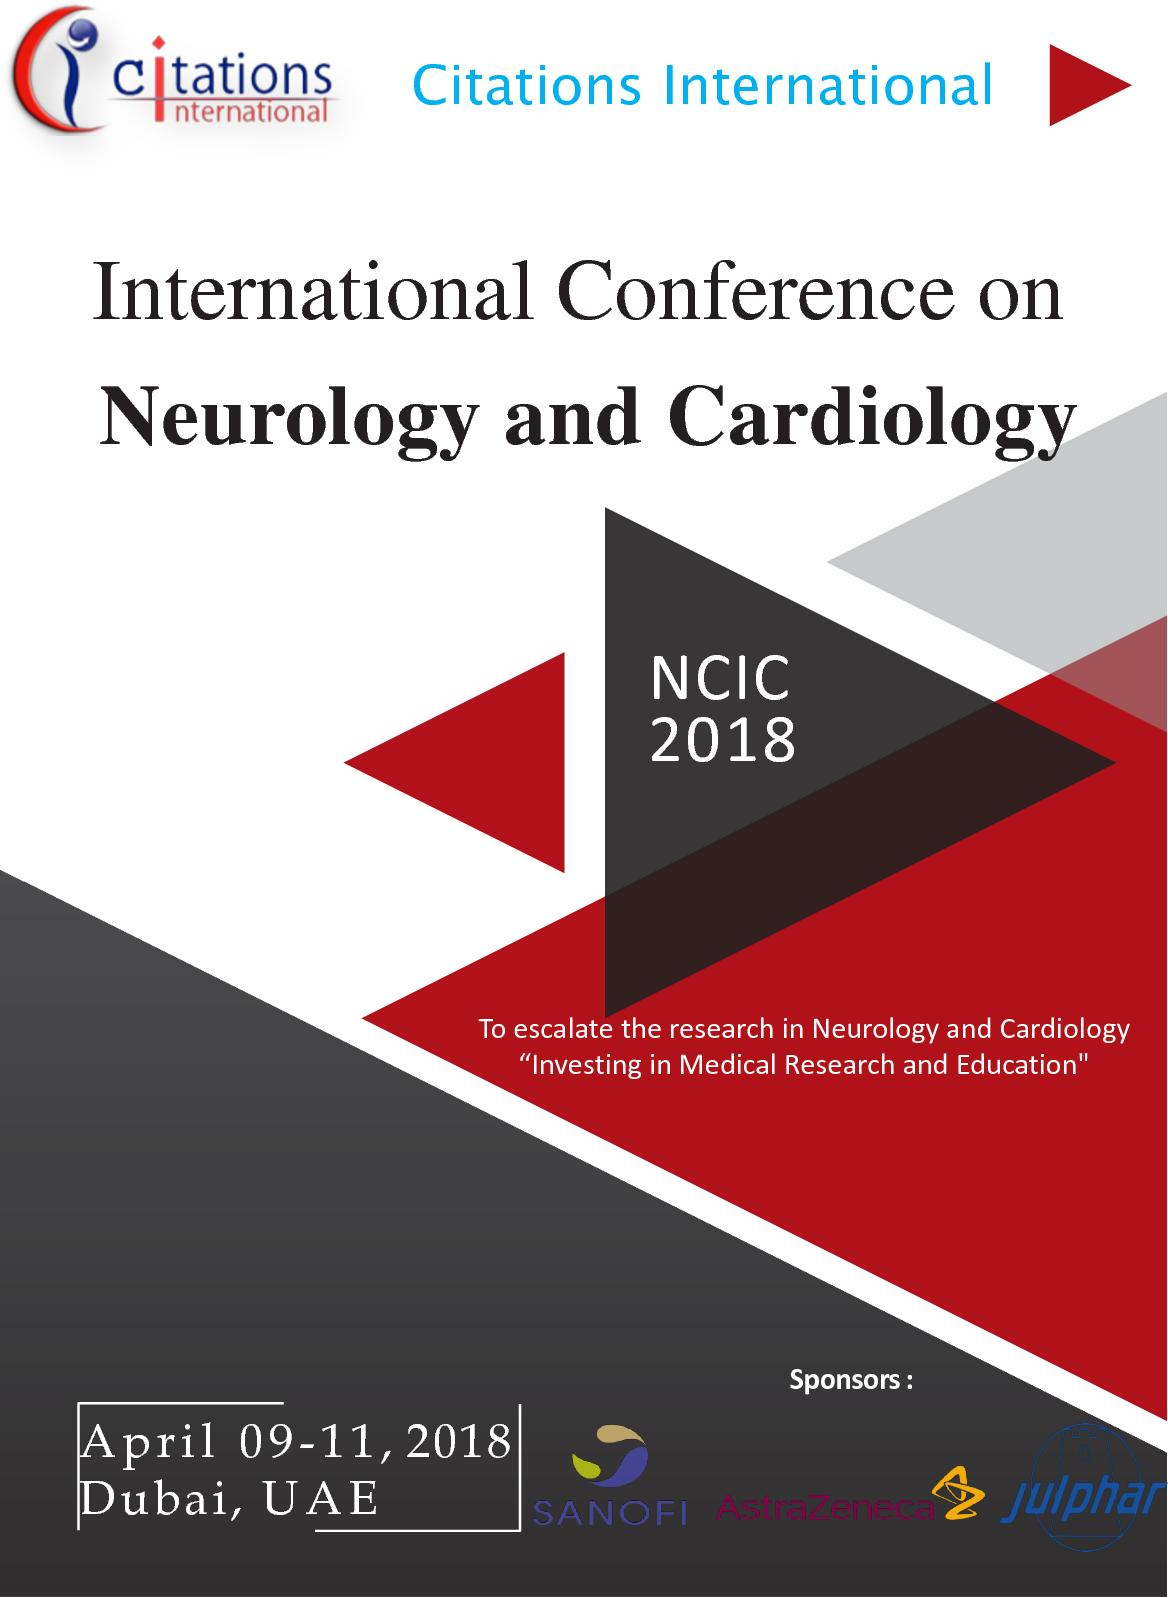 Calaméo - Neurology Conferences 2018